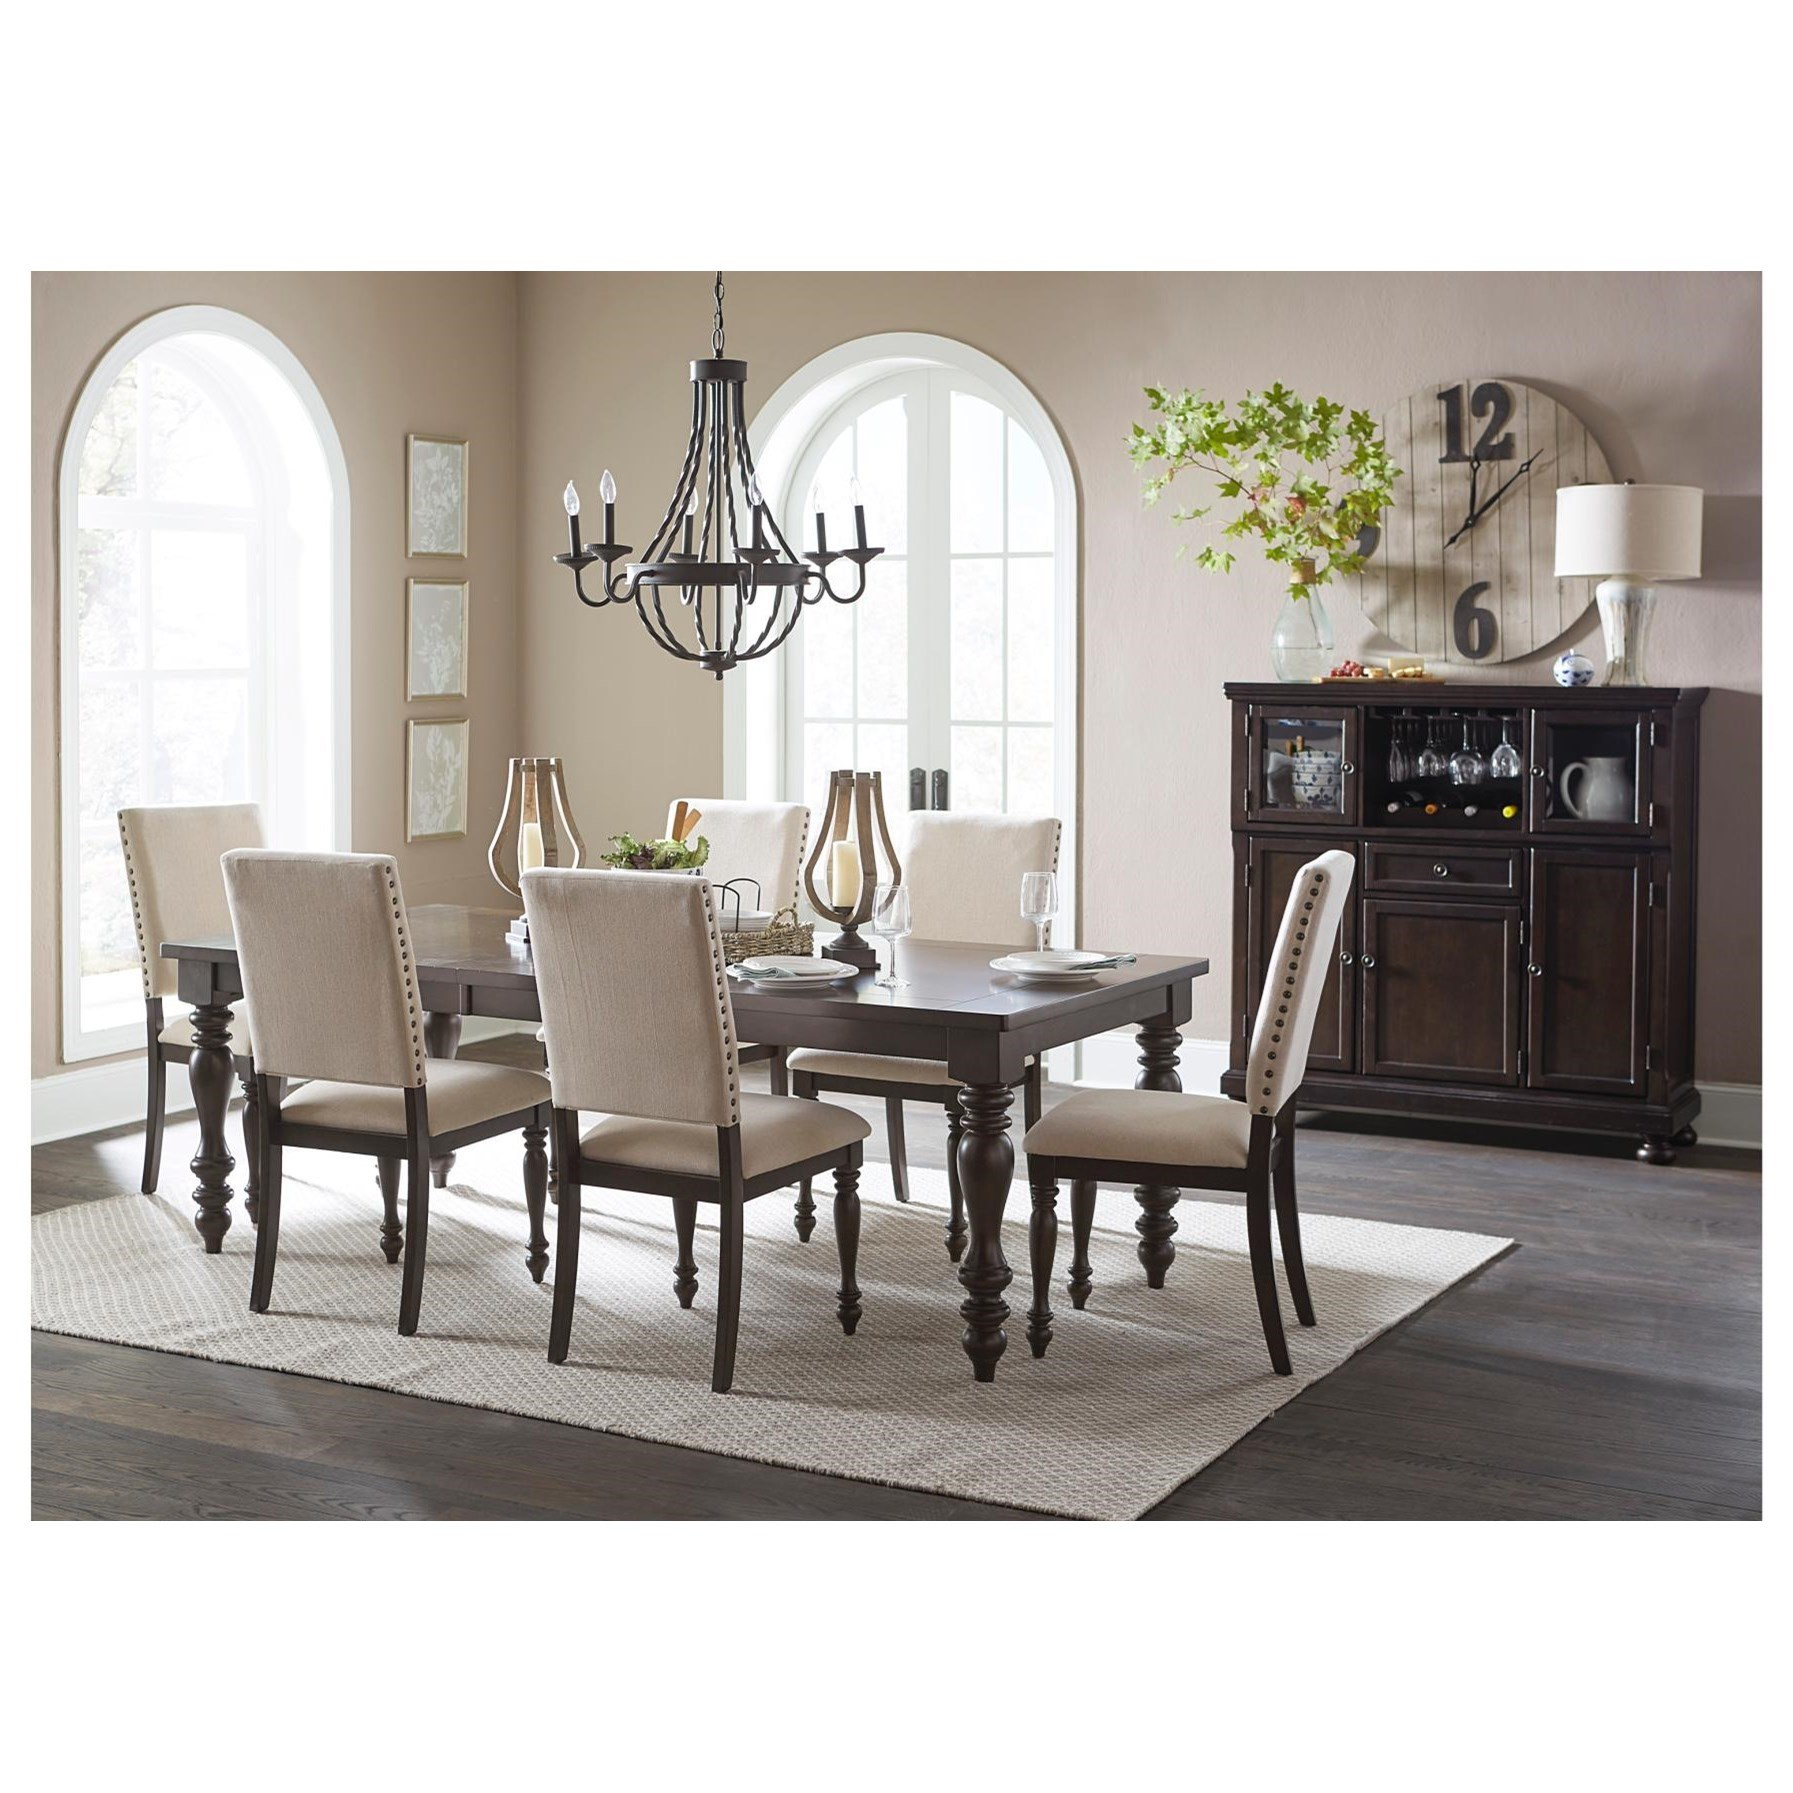 Begonia Formal Dining Room Group by Homelegance at Lindy's Furniture Company